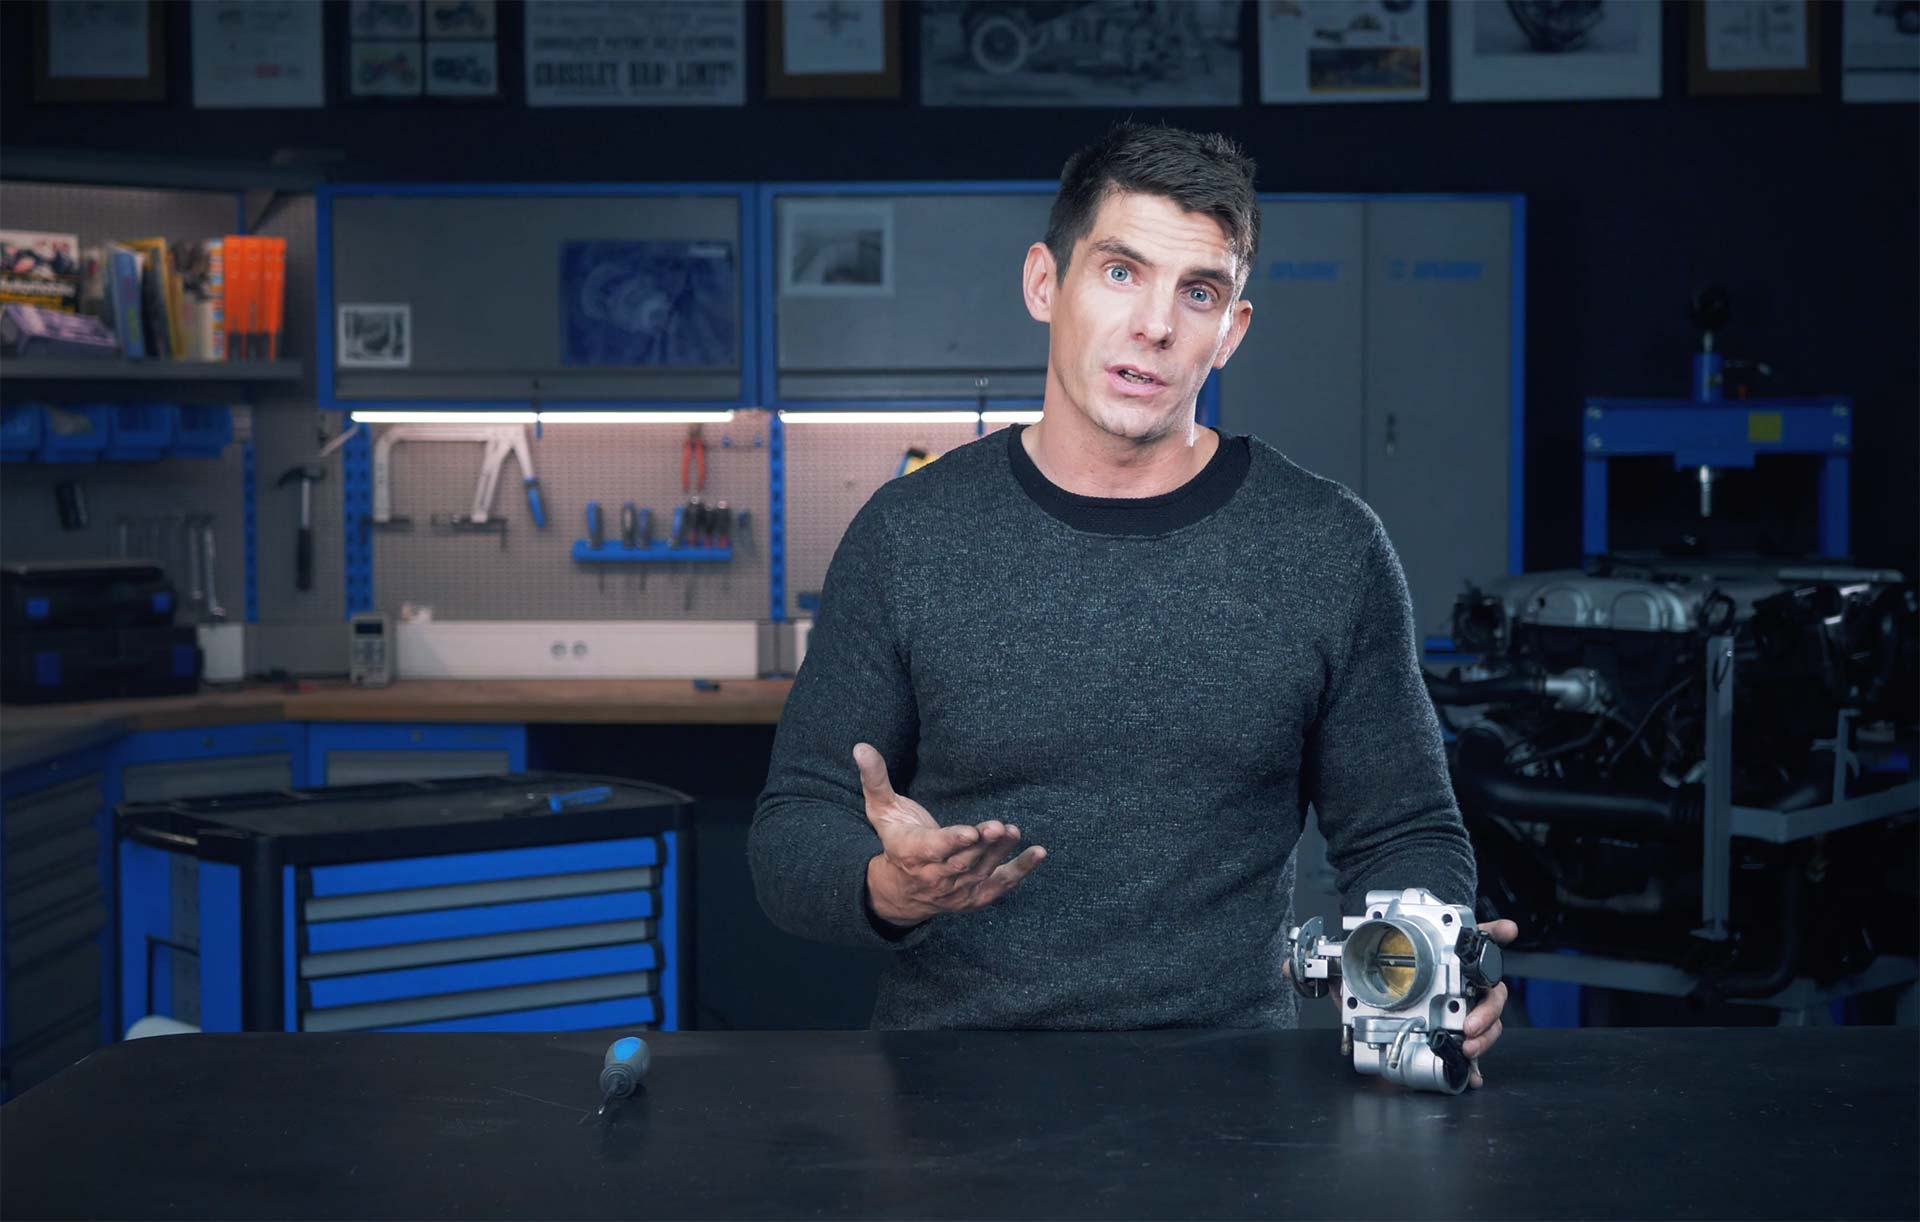 Ander Page Videos the car mechanics video course from how a car works